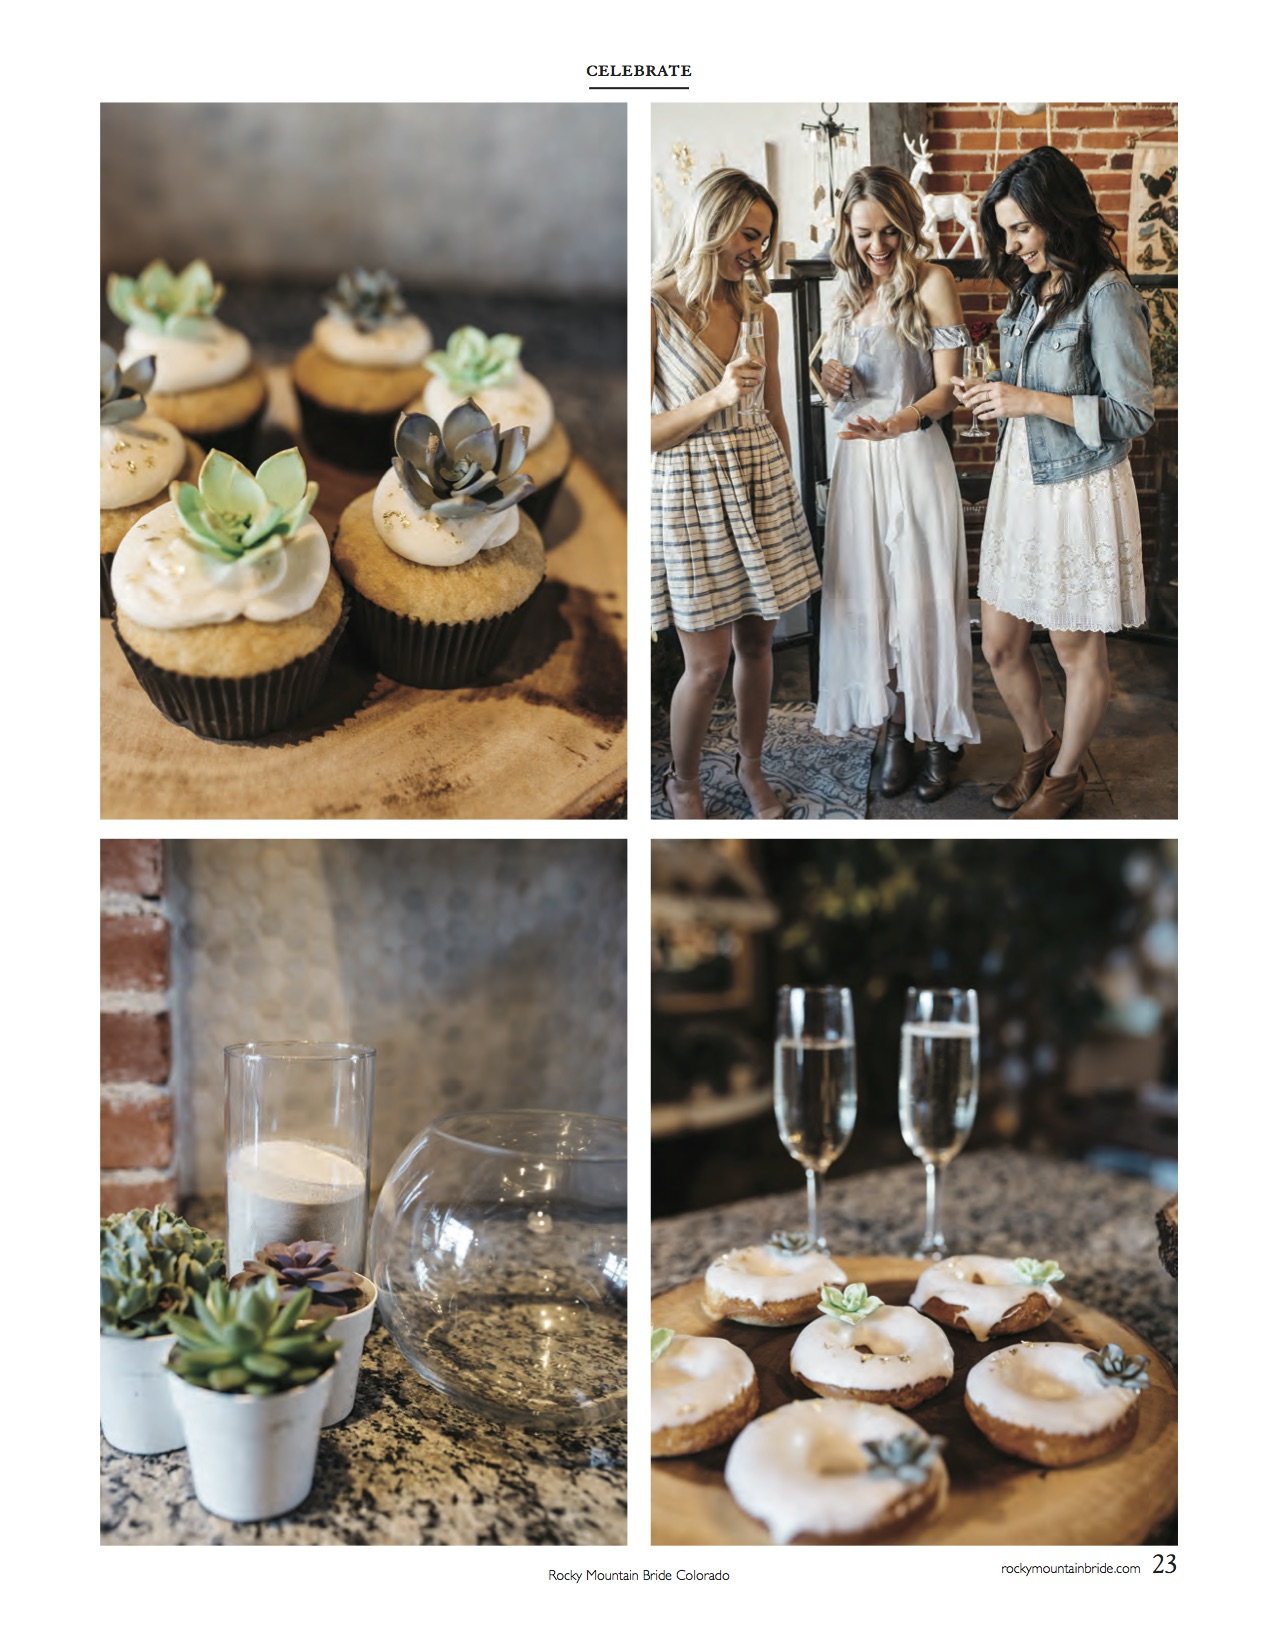 Rocky-mountain-bride-friends-flowers-sonjakphotography-wedding-colorado-best-engaged-spring-summer-2017-2018-honeycomb-fluffed